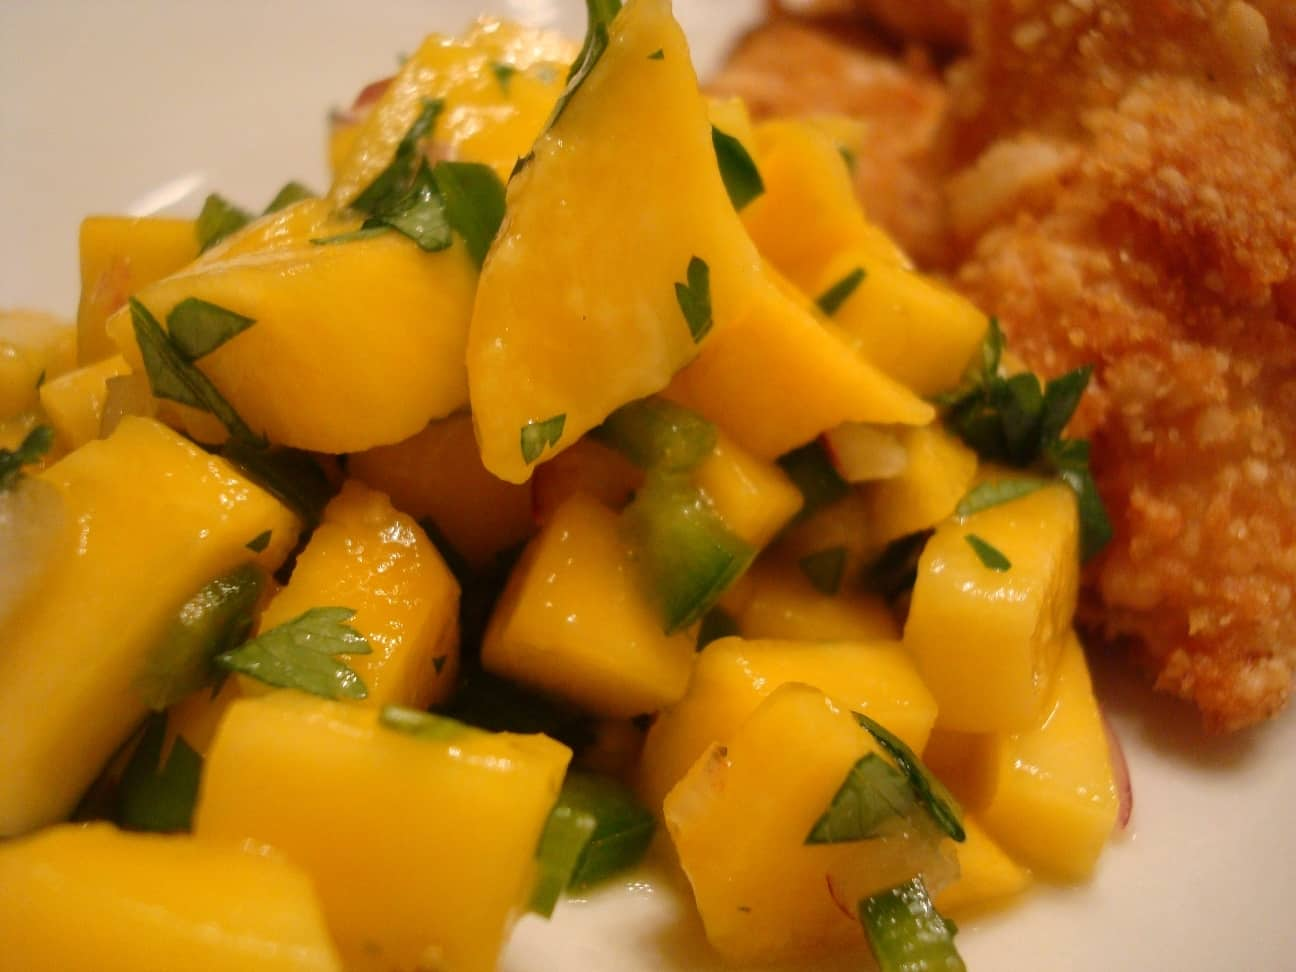 mango salsa and fried chicken on a white plate